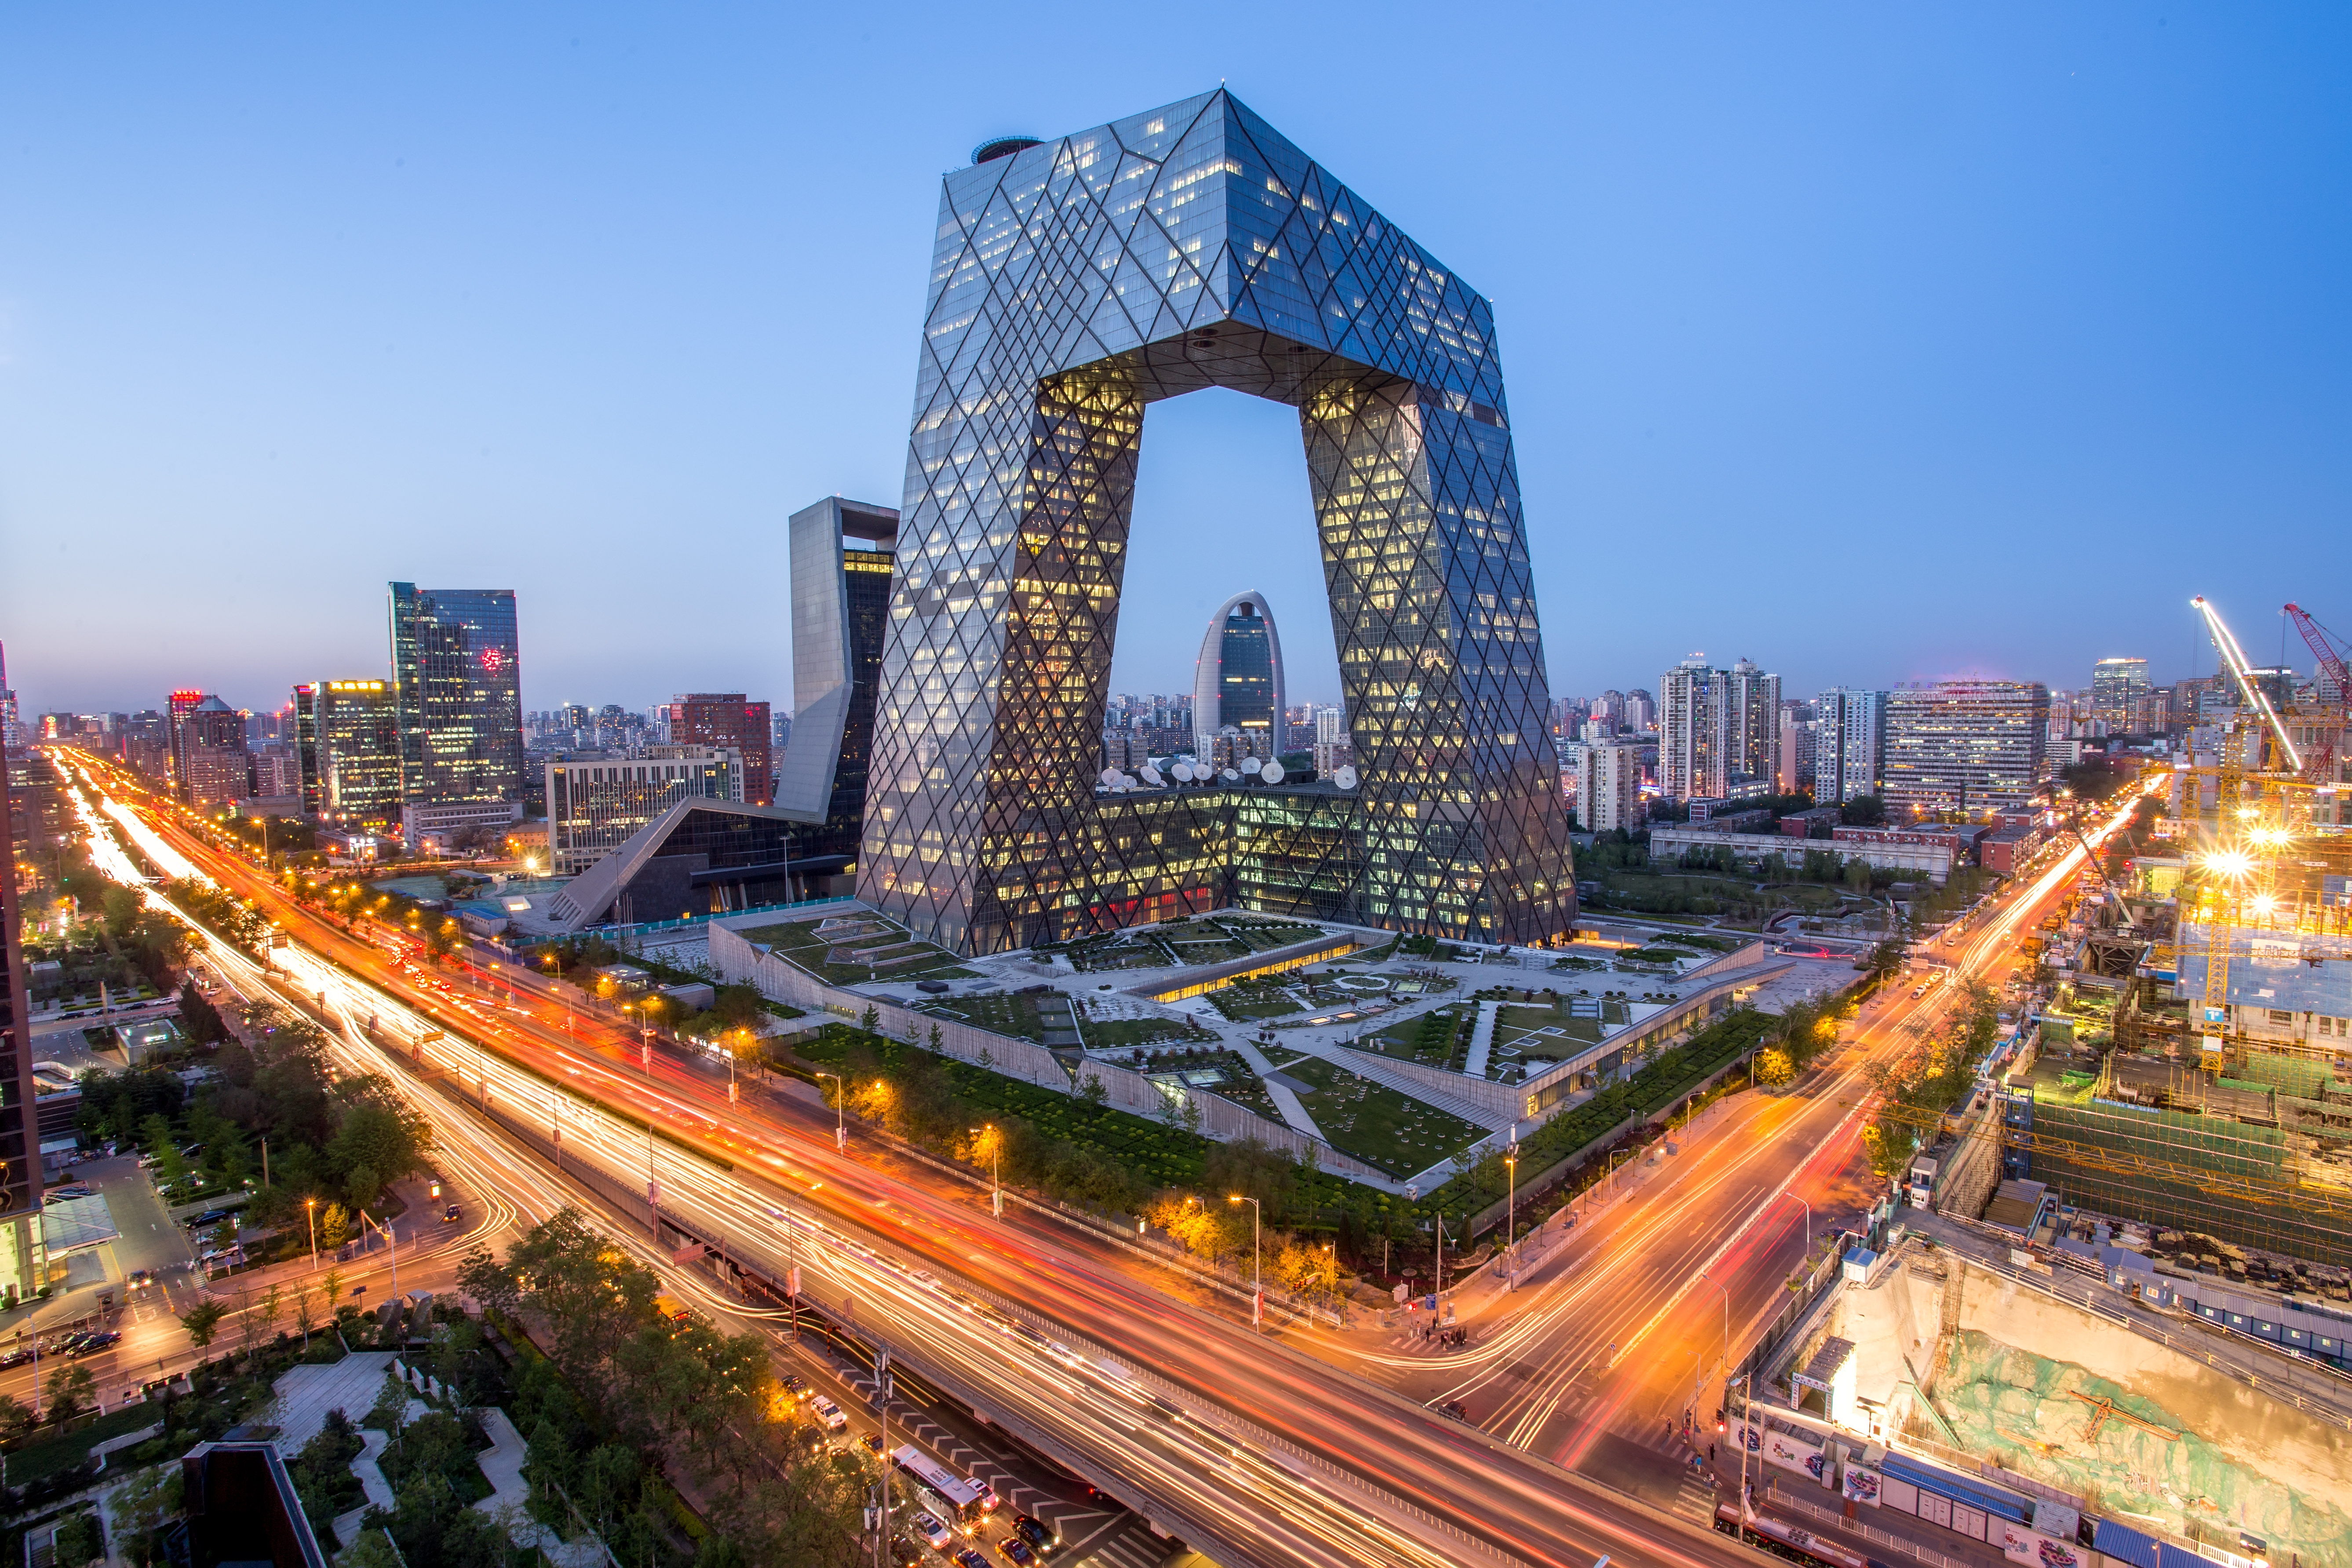 The China Central Television (CCTV) building , designed by Rem Koolhaas, in Beijing.